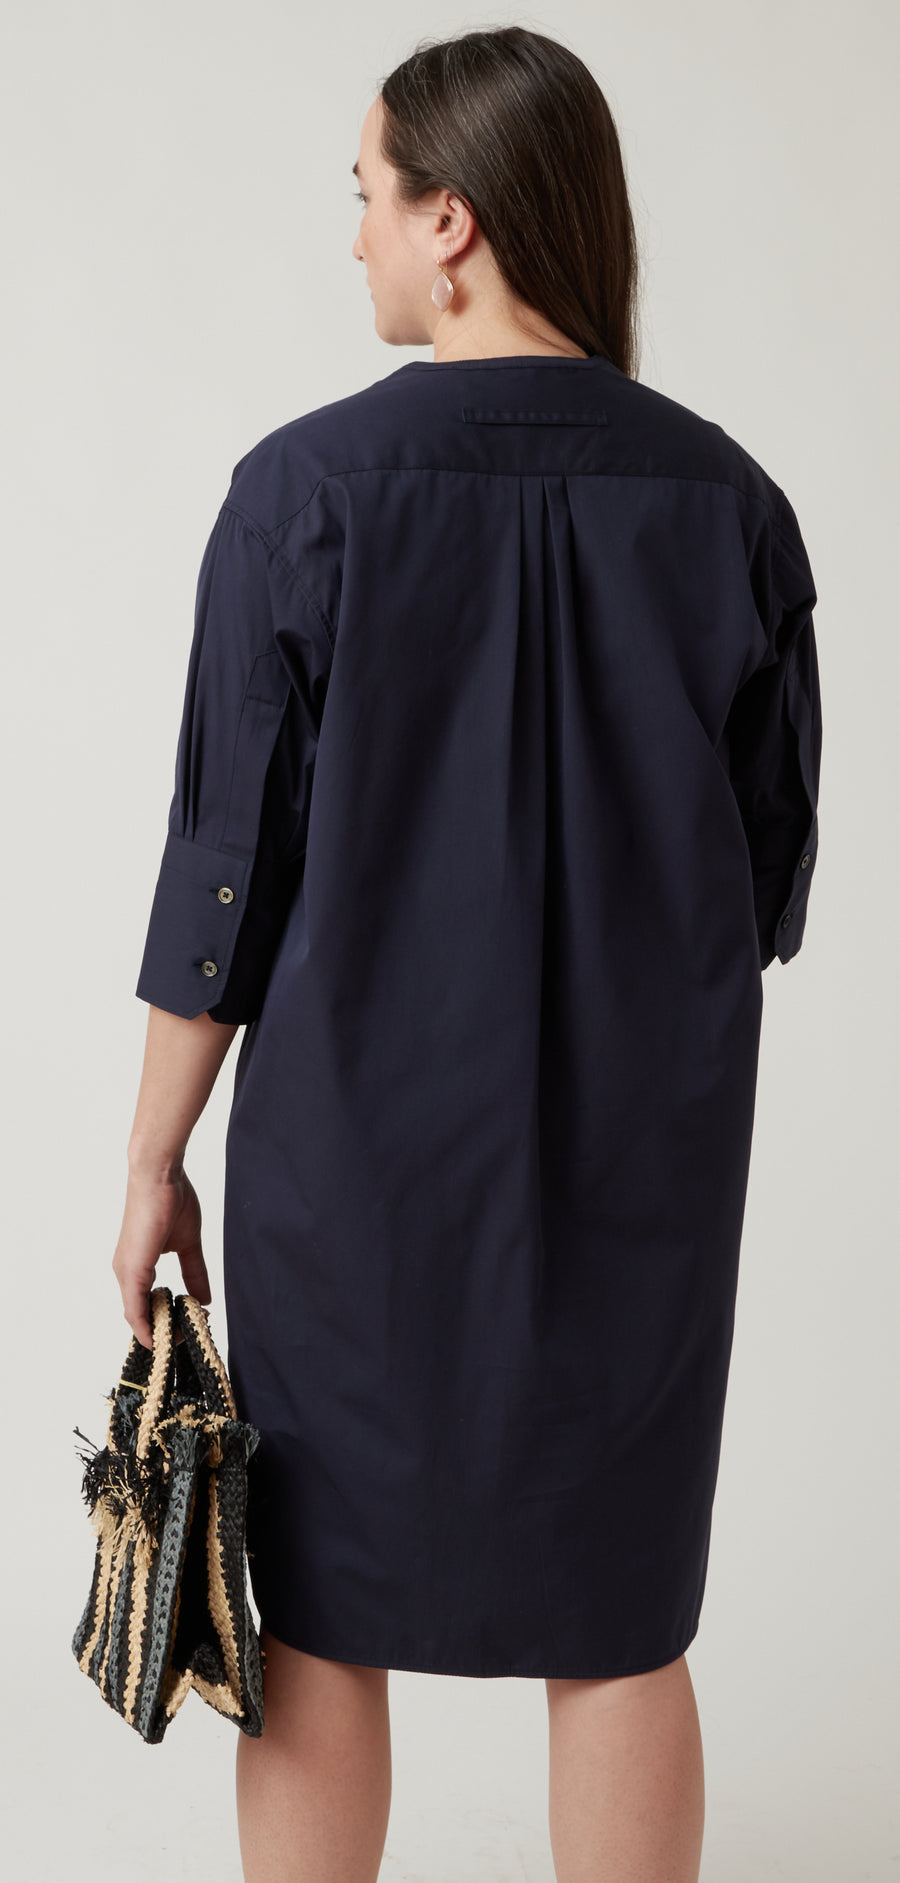 Ticca Bib-front Dress